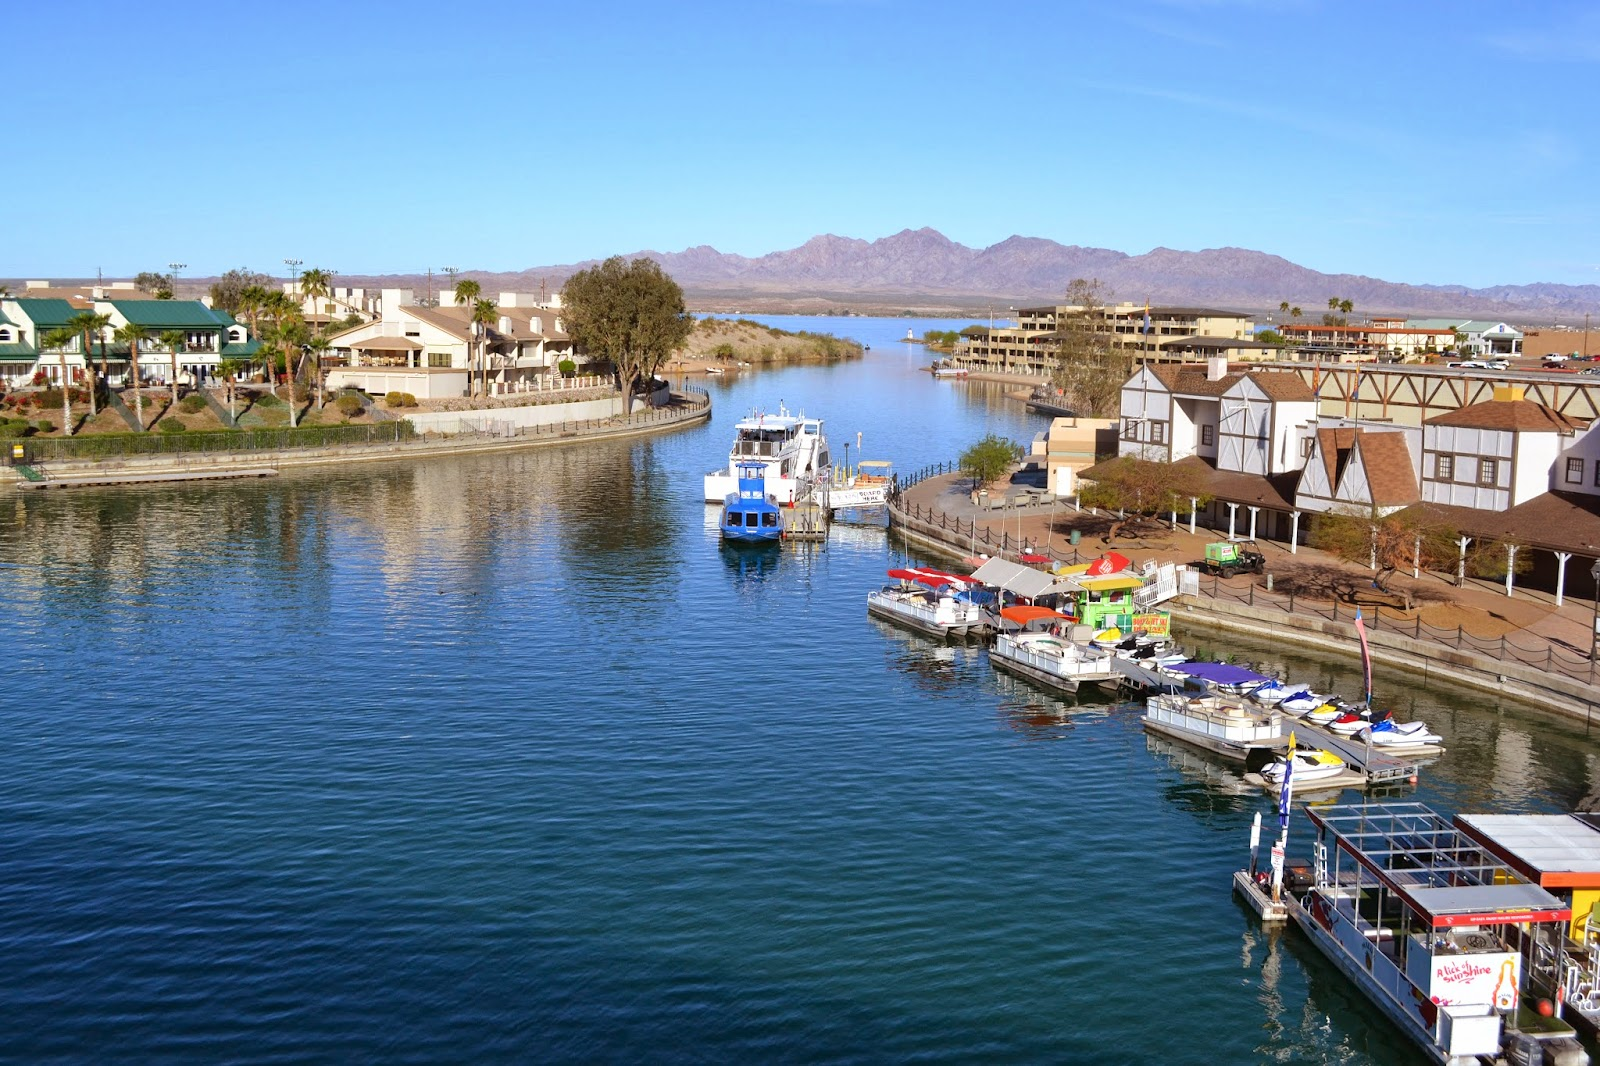 lake havasu city Weather underground provides local & long range weather forecasts, weather reports, maps & tropical weather conditions for locations worldwide.